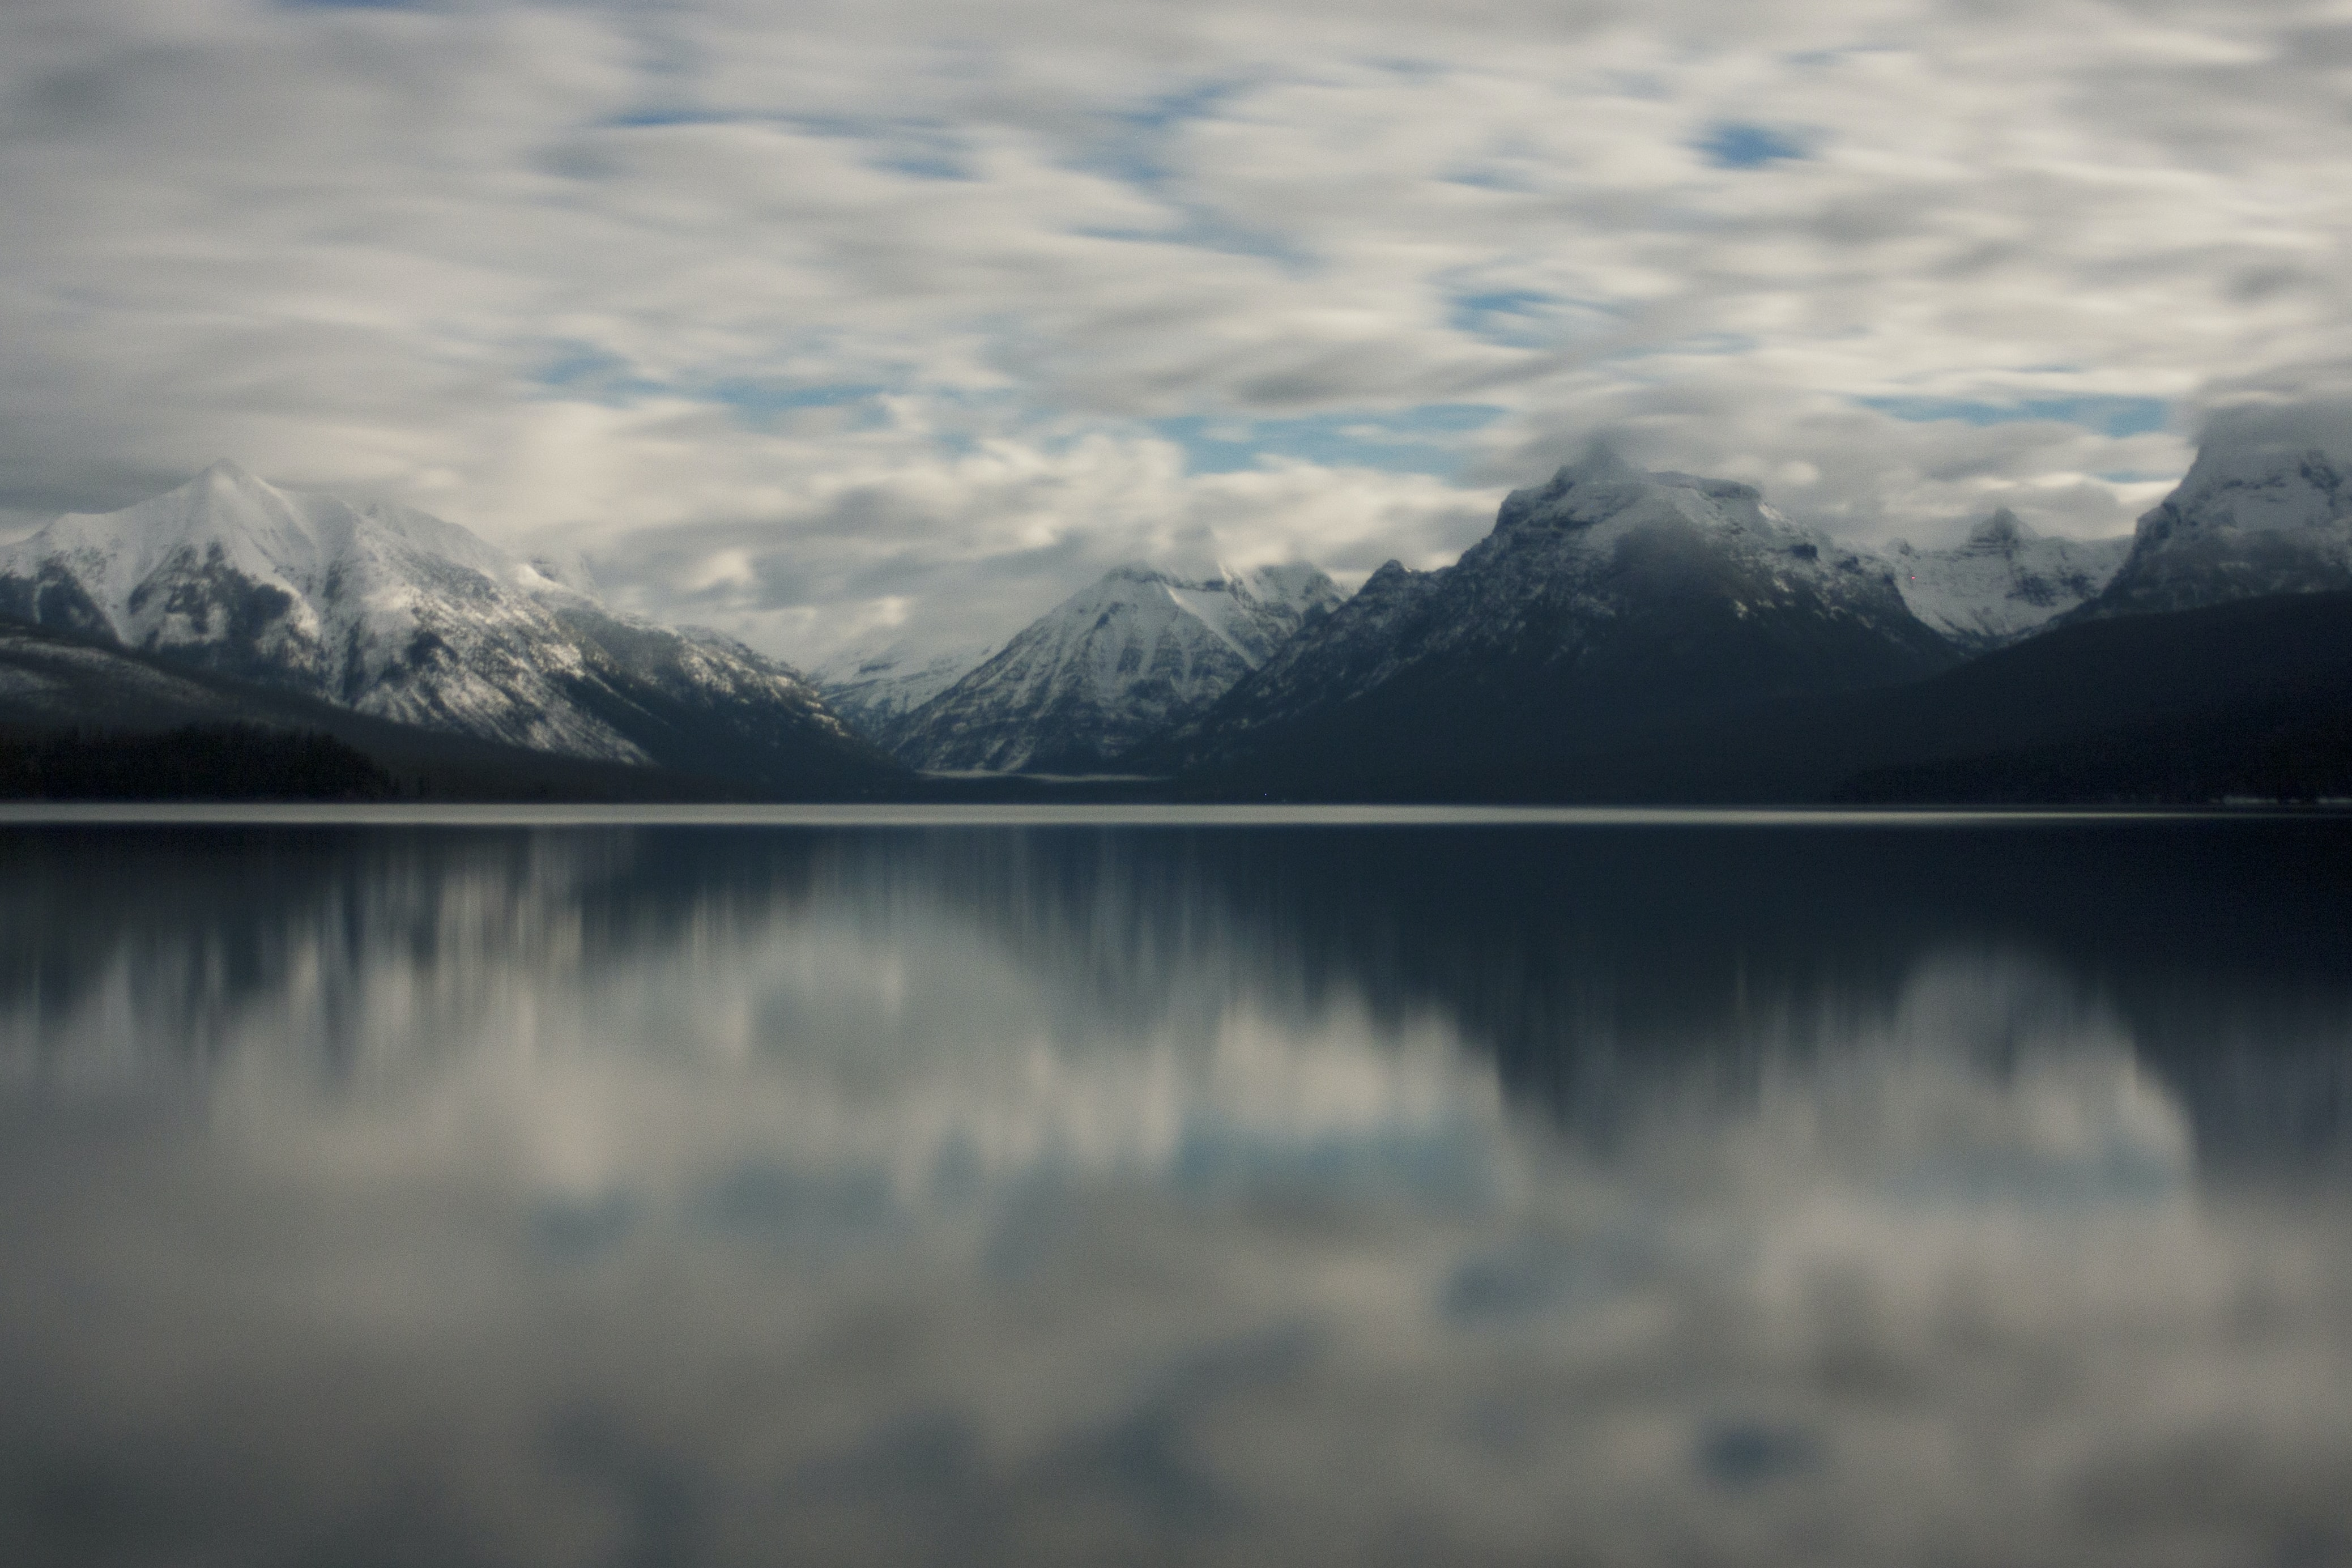 Snowcapped mountains and fluffy clouds reflected on the surface of Lake McDonald